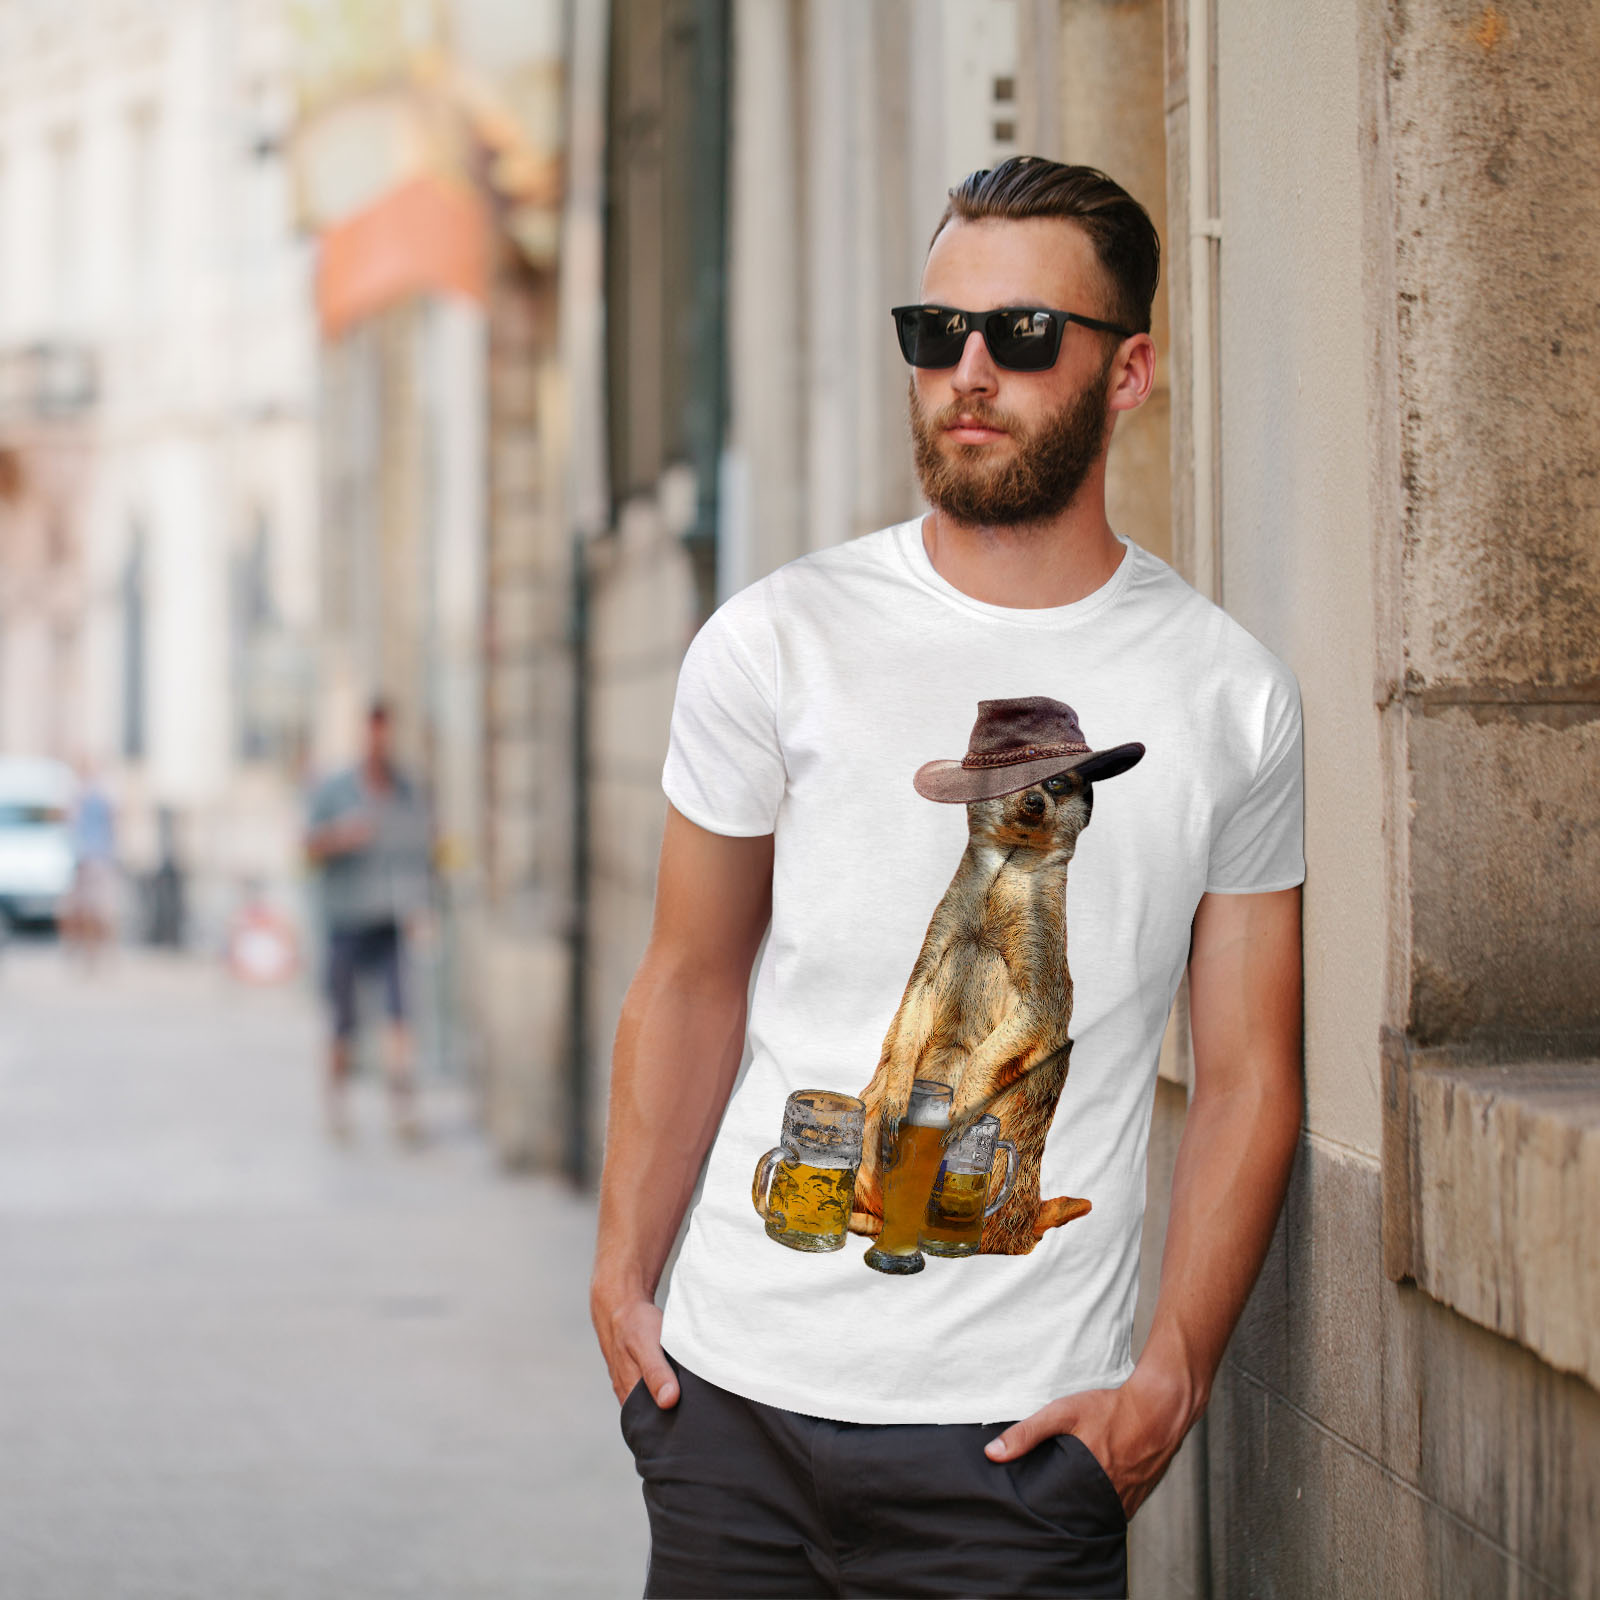 Wellcoda-Drunk-Animal-Beer-Mens-T-shirt-Funny-Graphic-Design-Printed-Tee thumbnail 11